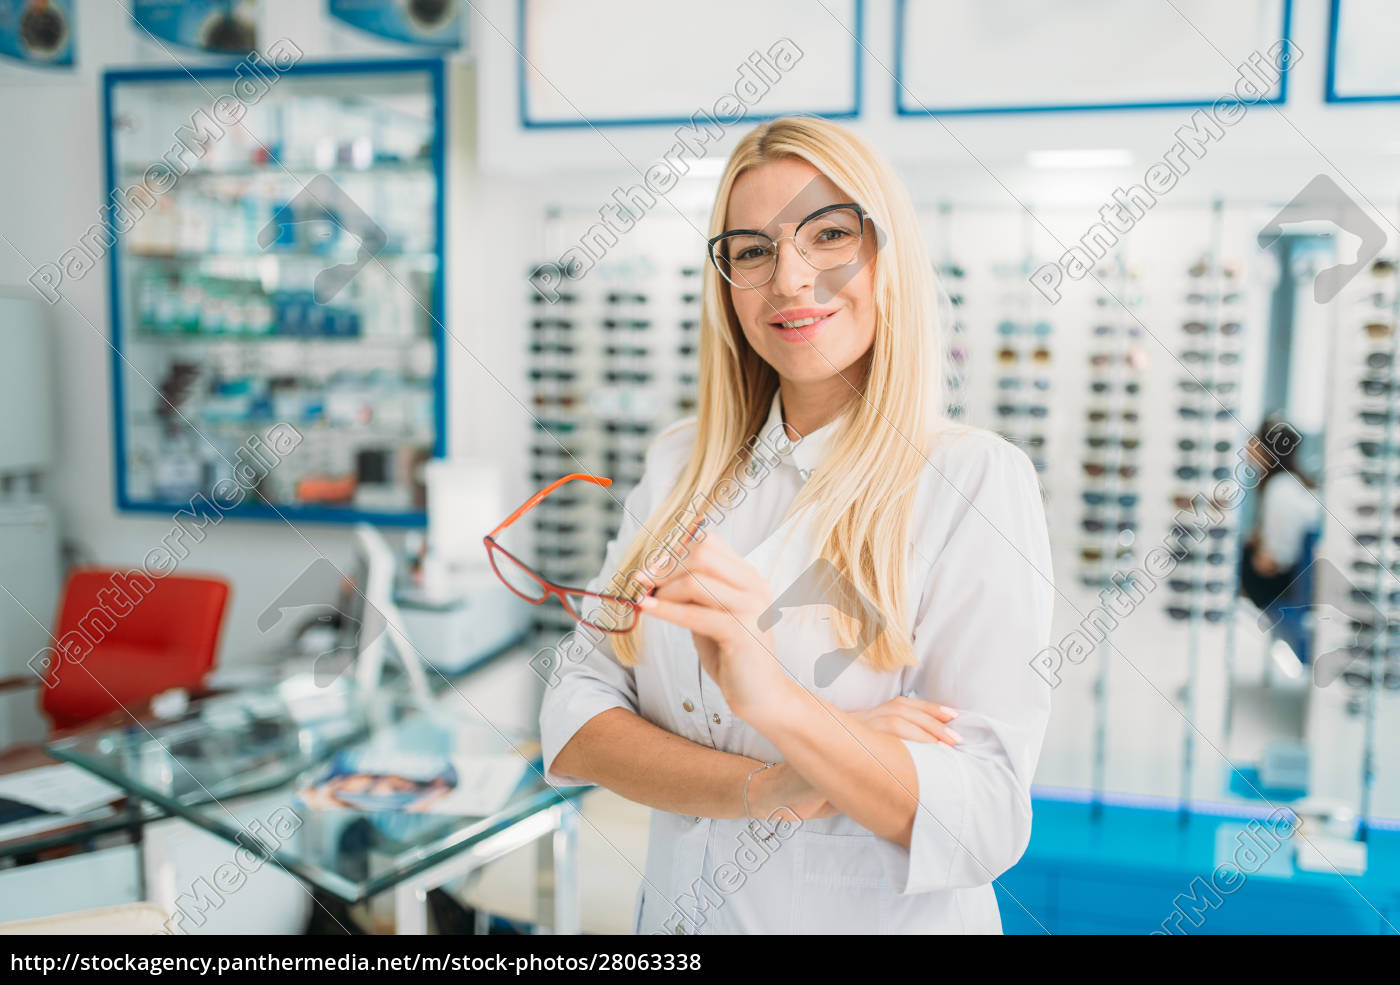 female, optometrist, holds, spectacles, in, hands - 28063338